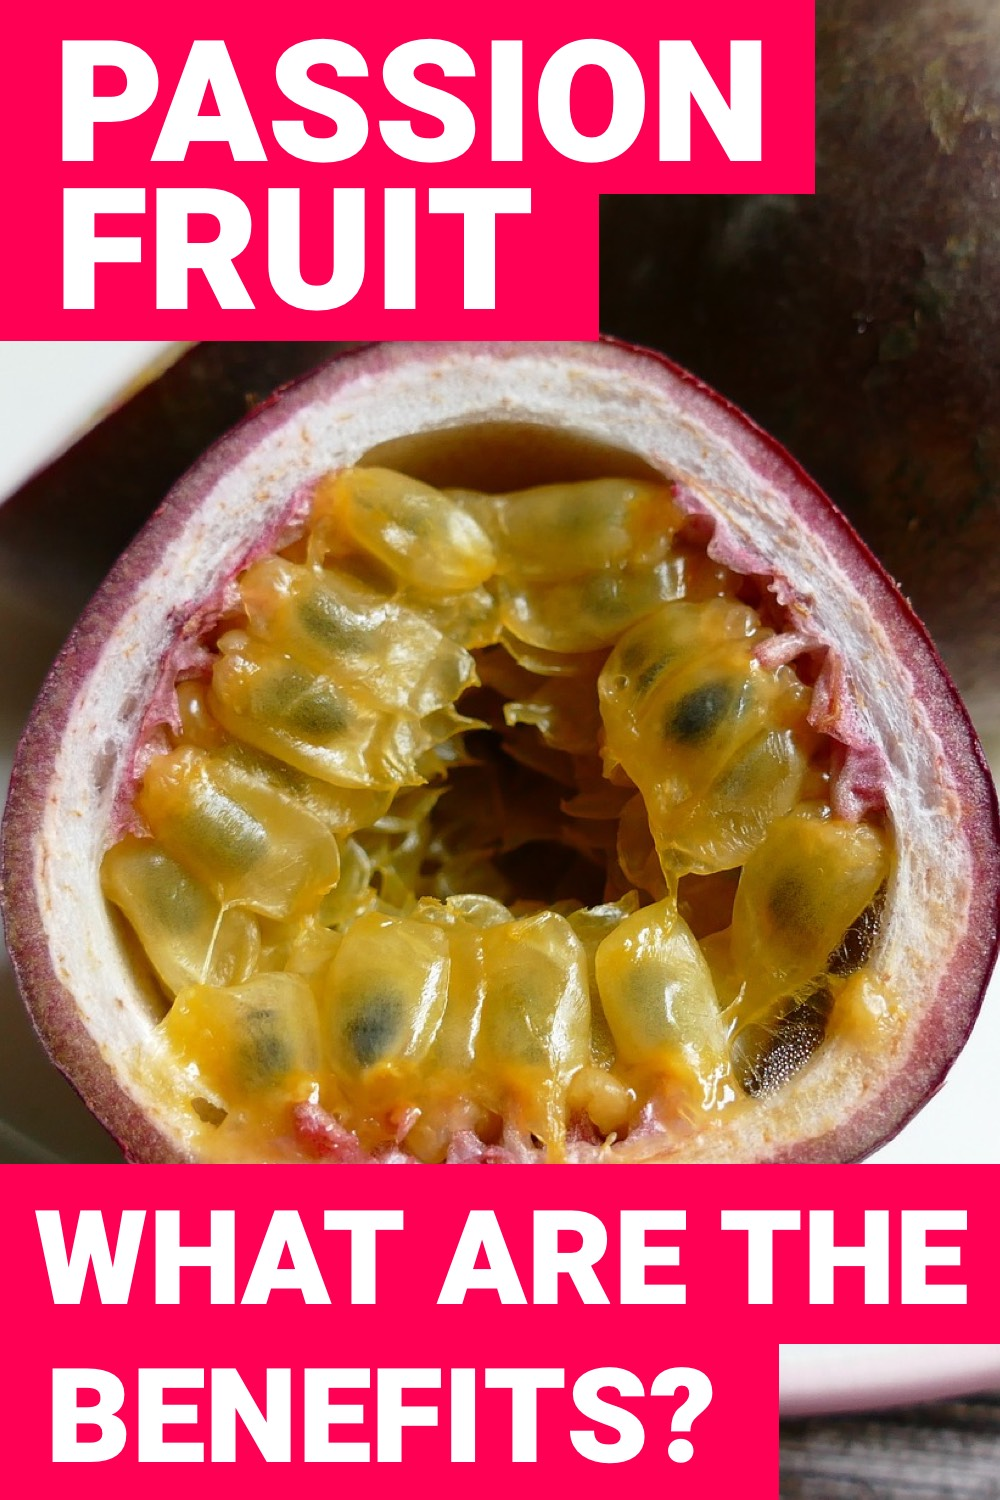 When it comes to passion fruit benefits, you need them. But what is passion fruit? Find out here.